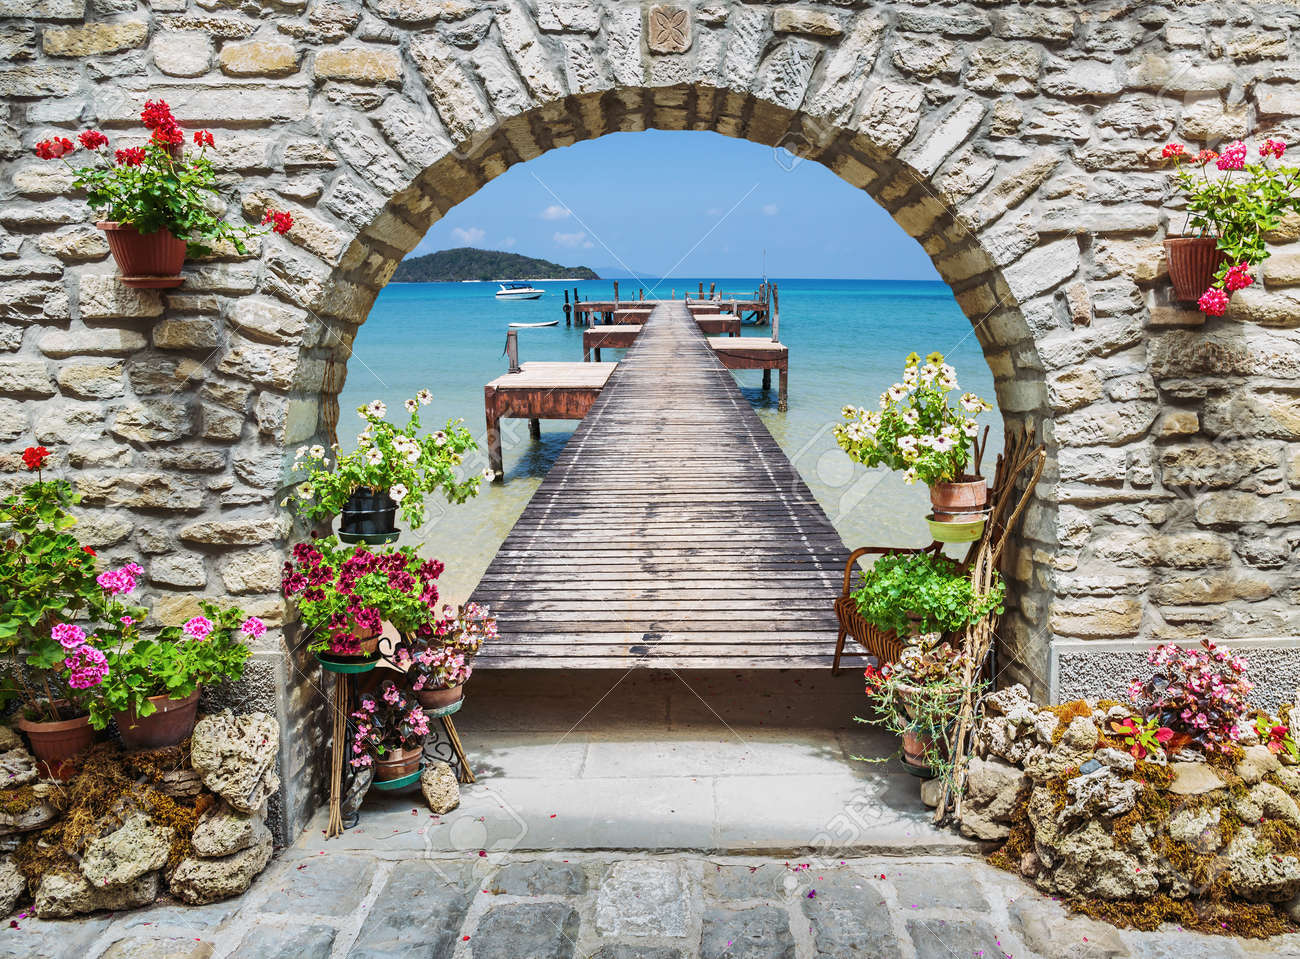 Seaview through the stone arch with flowers in Italy - 51640900